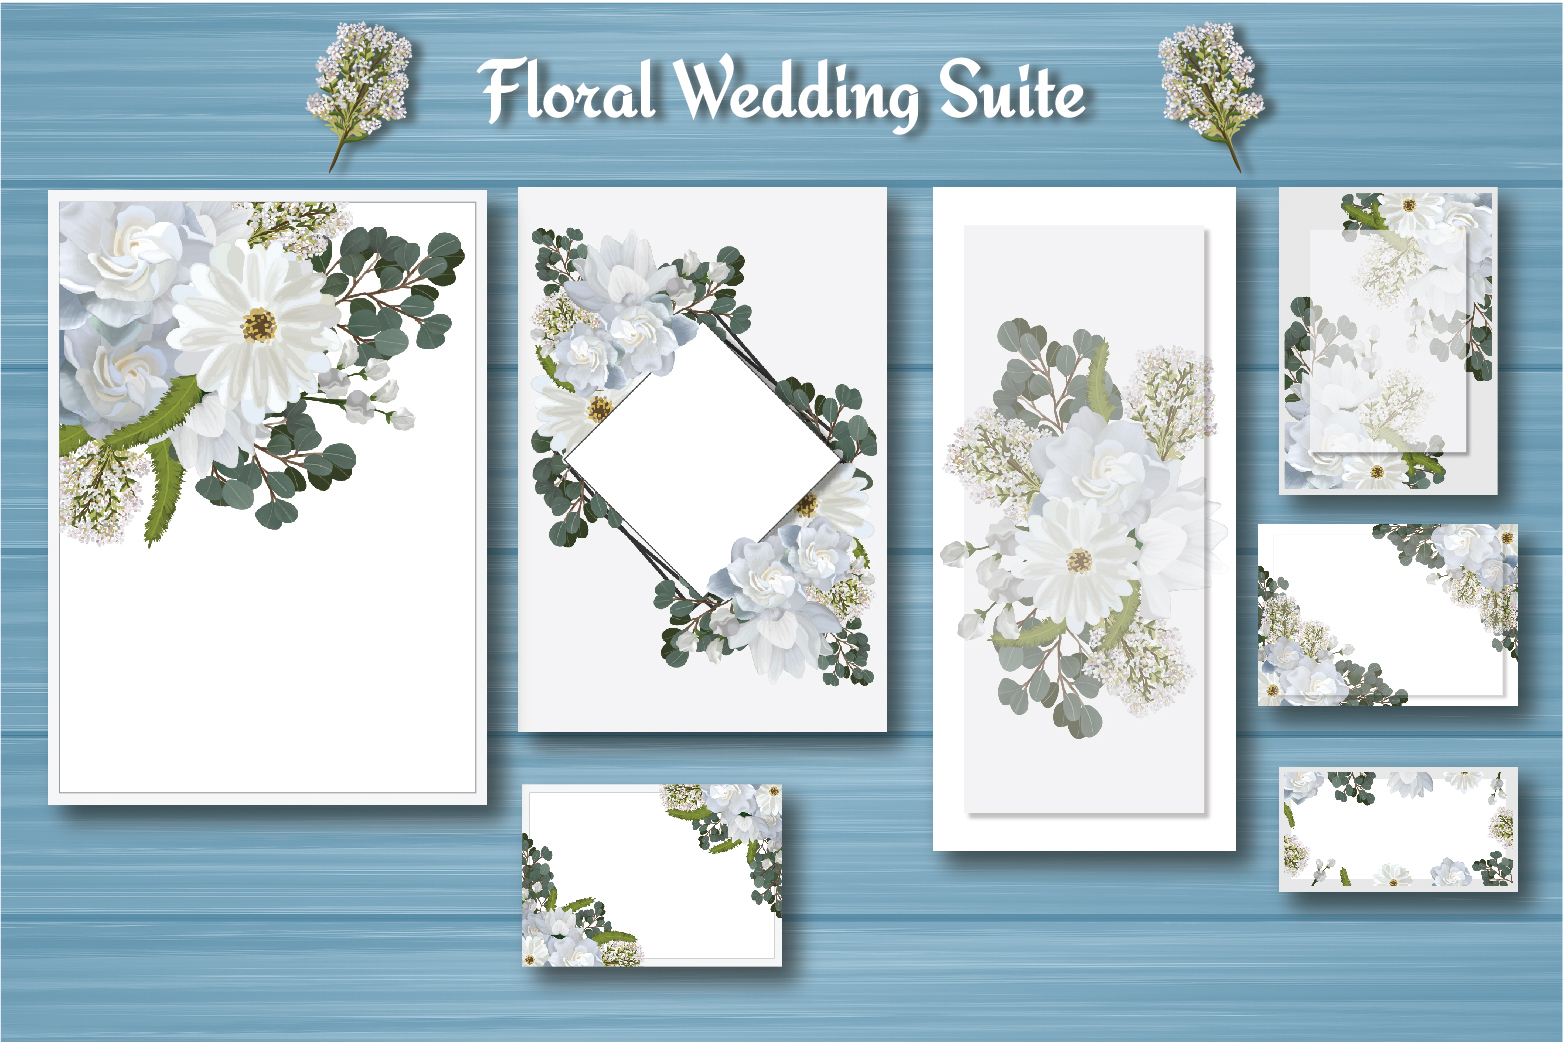 White Floral Wedding Invitation Suite example image 5